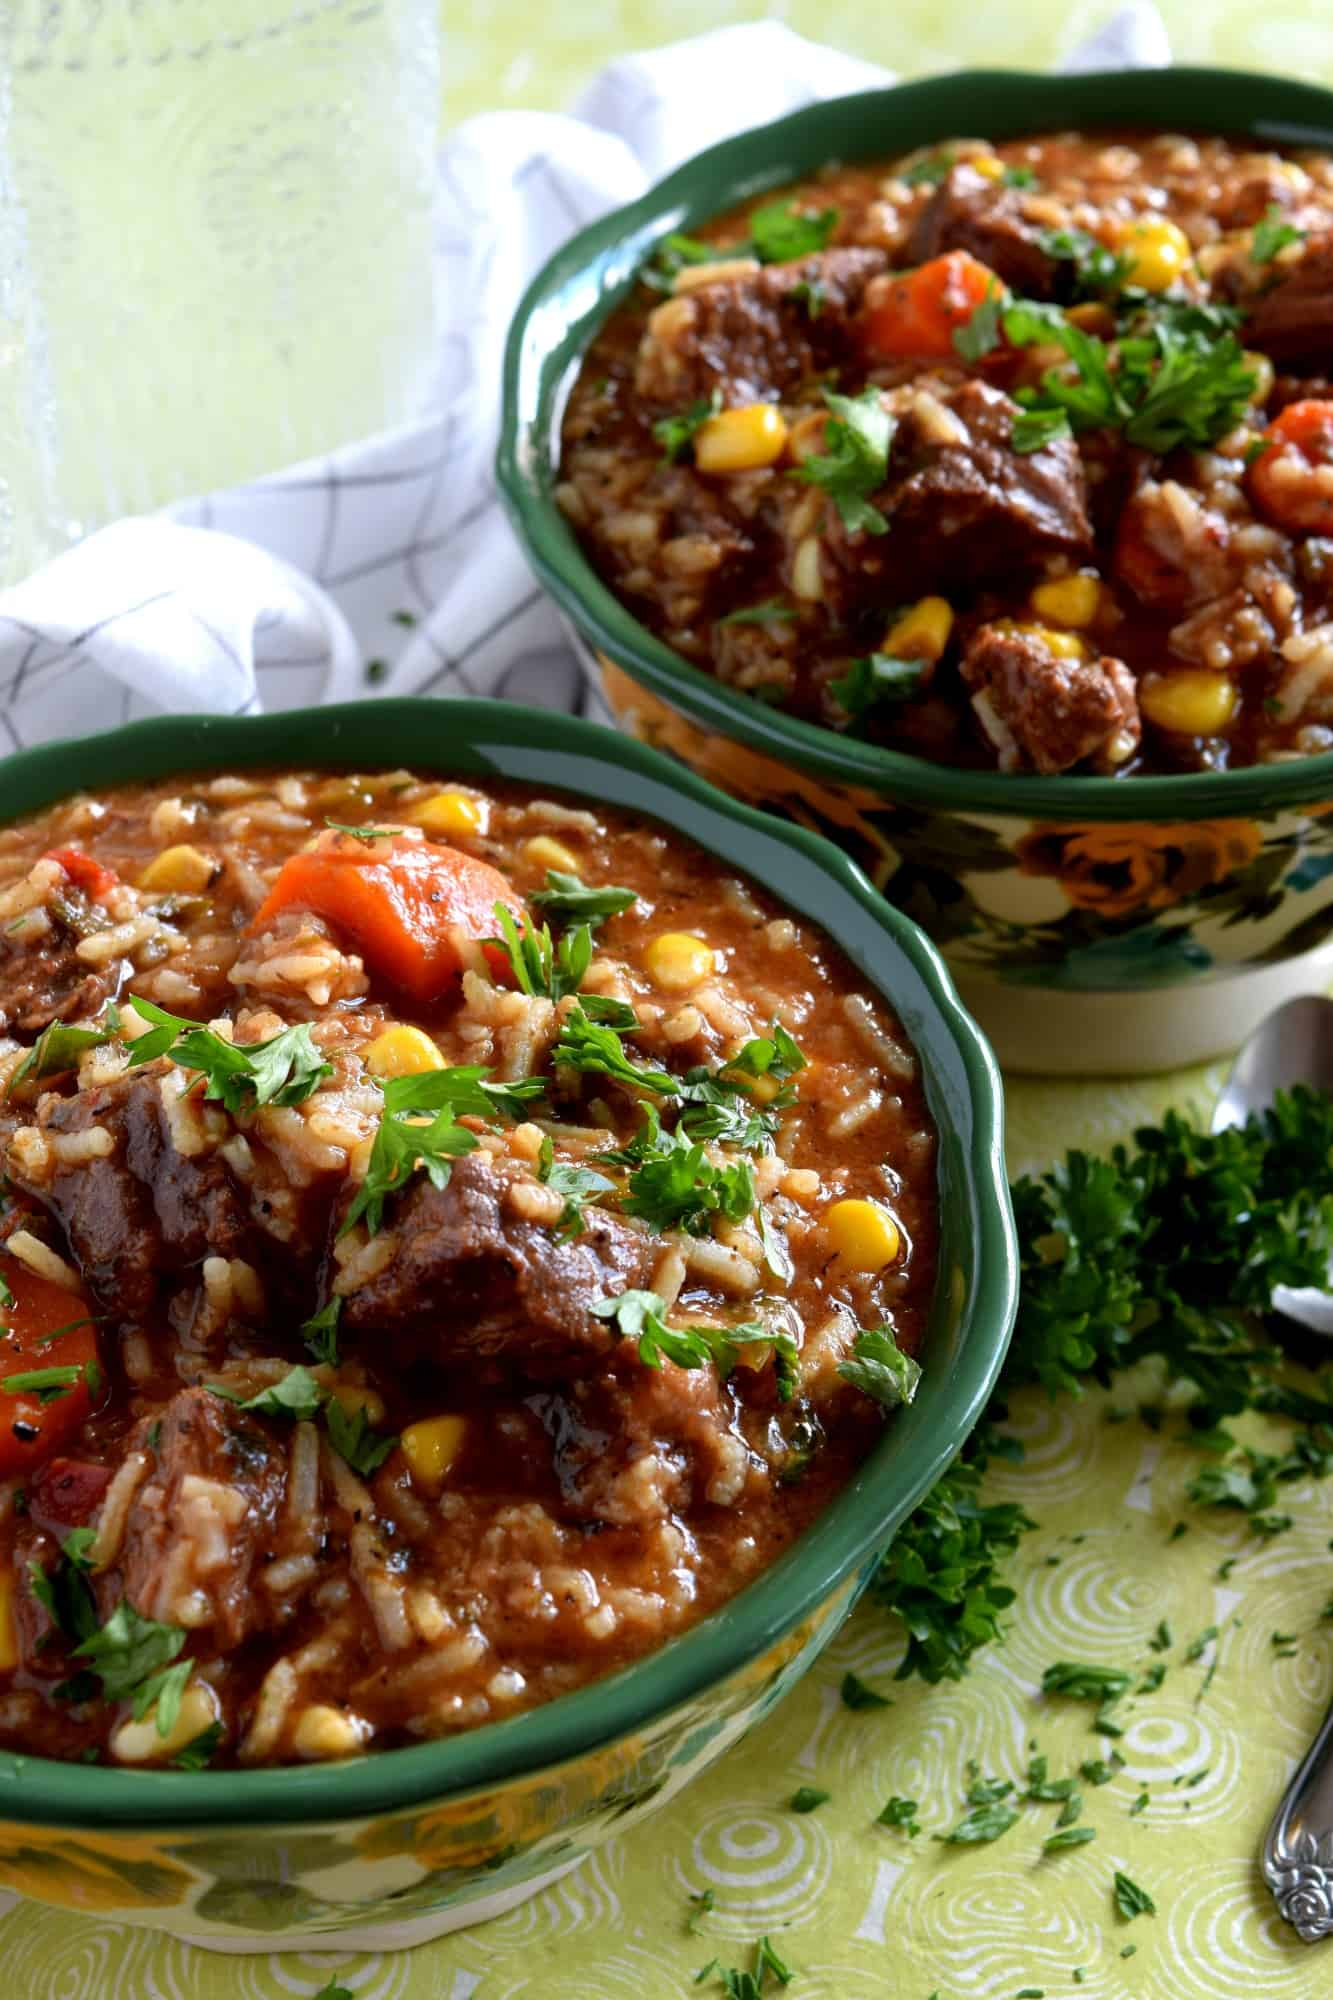 Braised Beef Stew With Rice